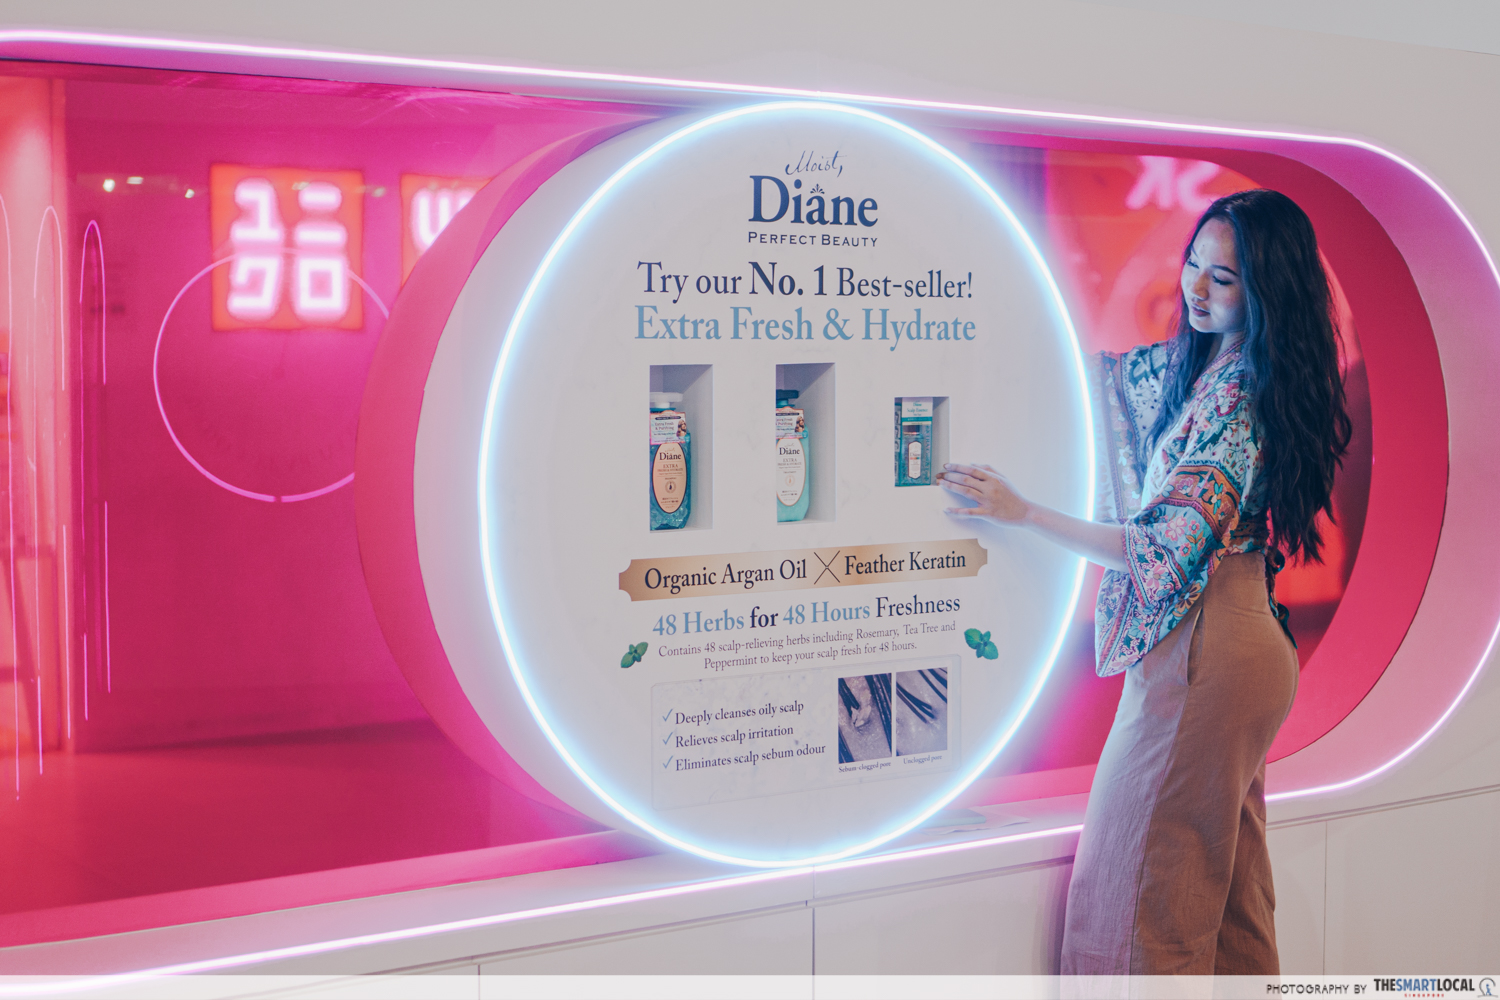 Extra Fresh & Hydrate is Moist Diane's best seller